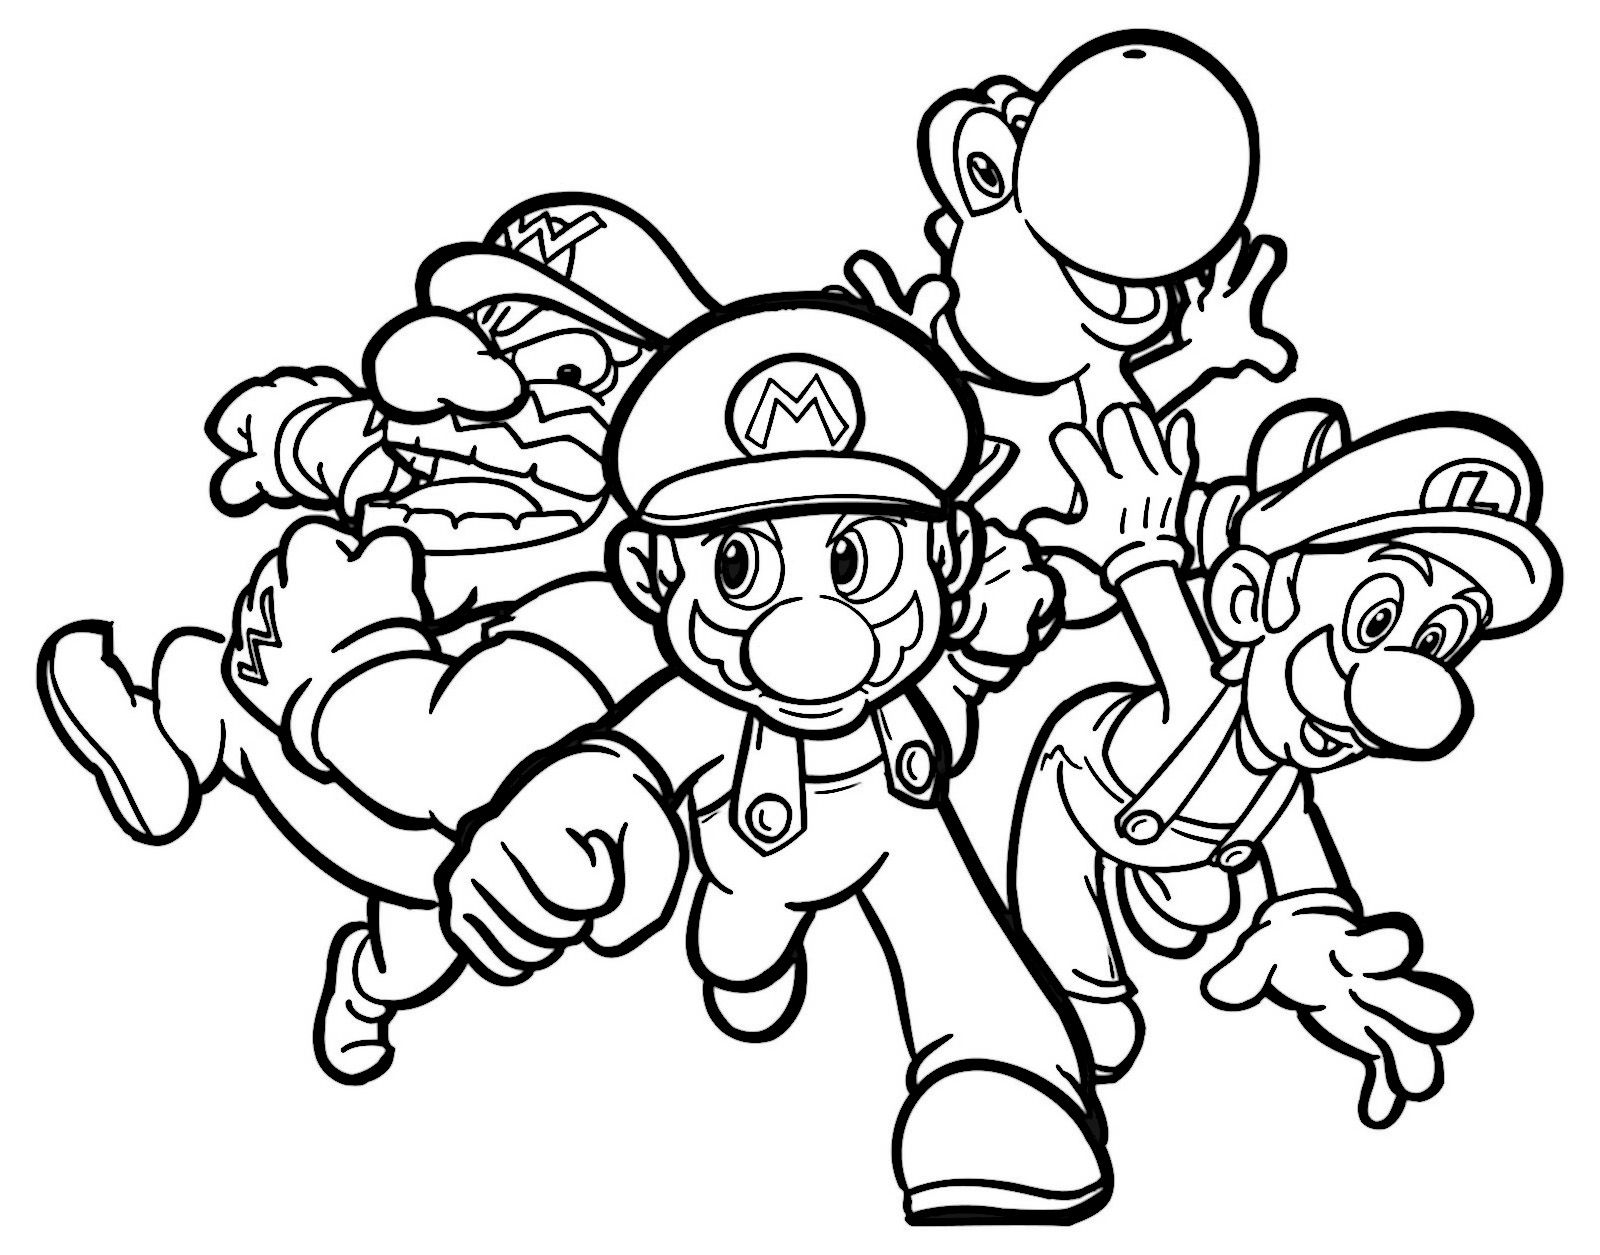 Mario Bross Coloring Pages 2 Ausmalbilder